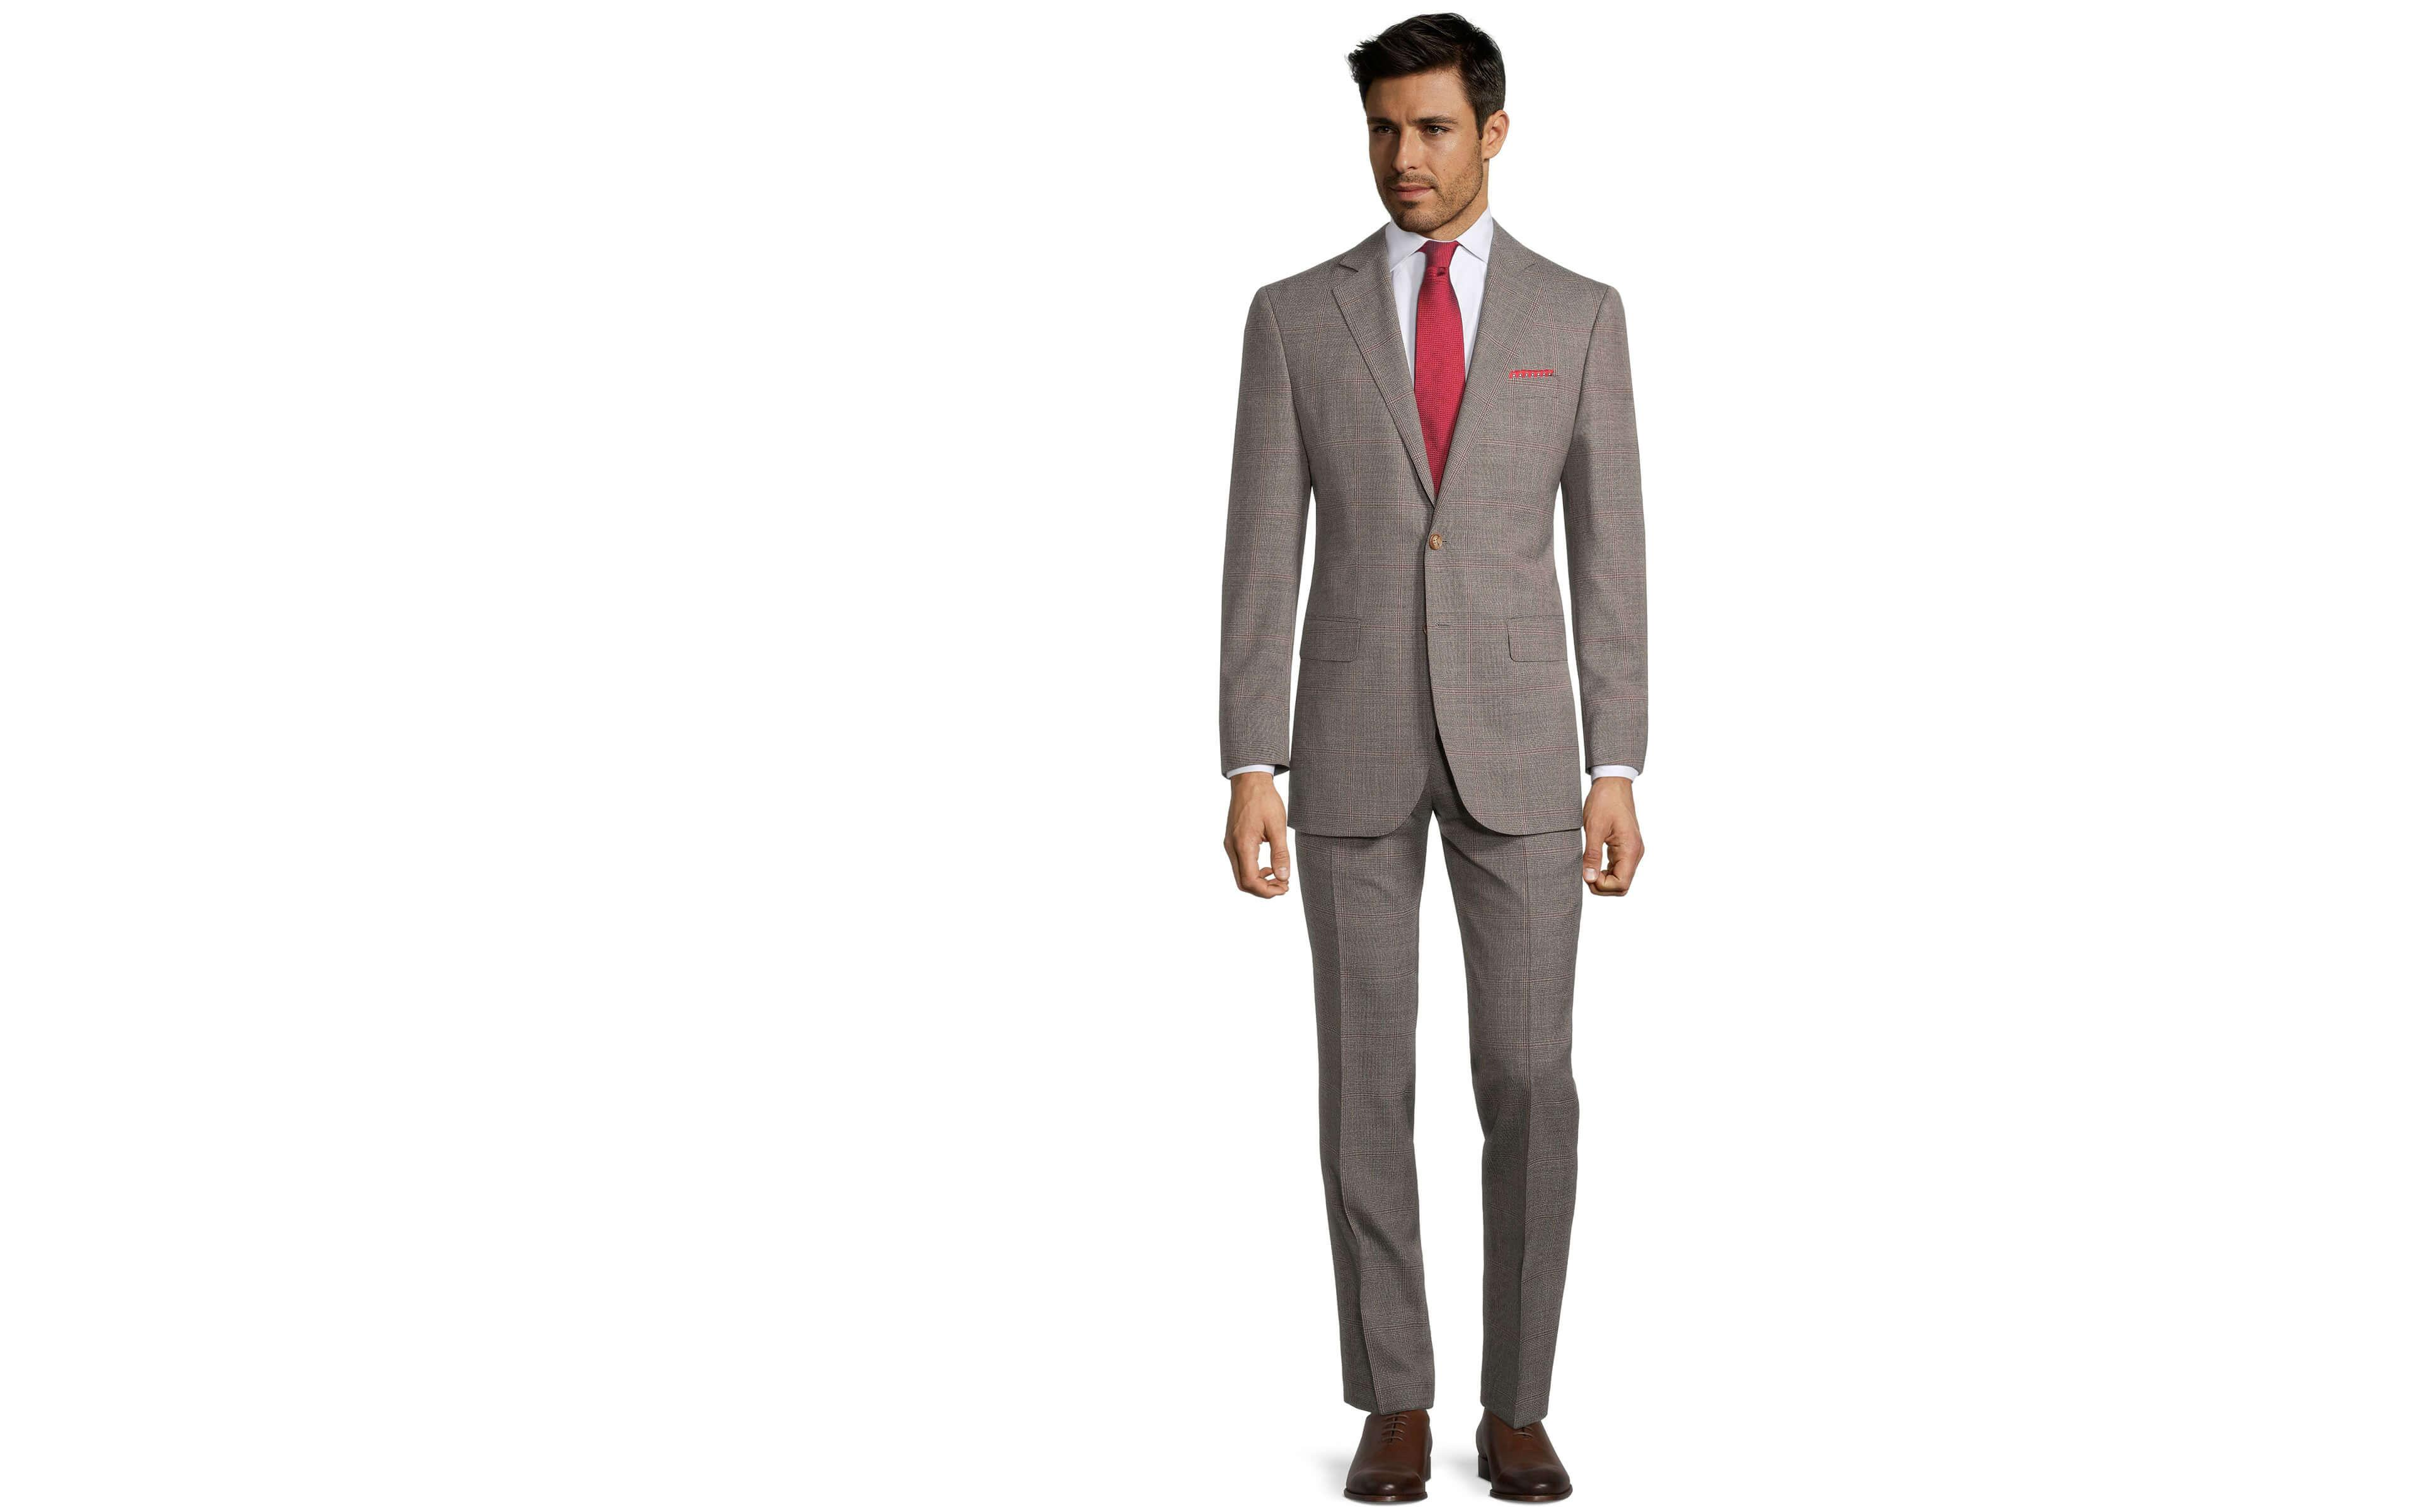 Tropical Rustic Light Brown Plaid with Red Overcheck Suit